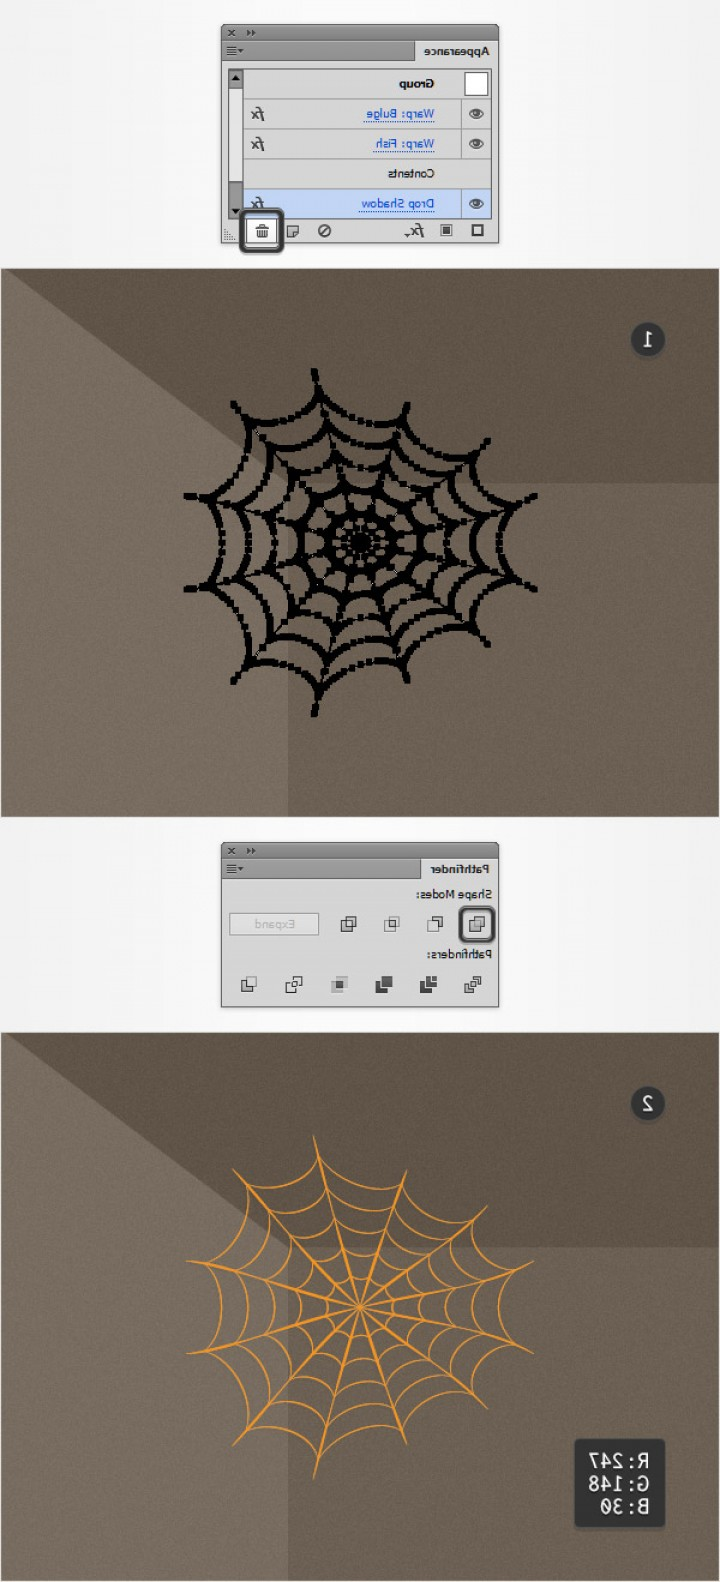 Easy Spider Vector Illustration: How To Create A Simple Spider Web Illustration In Adobe Illustrator Cms